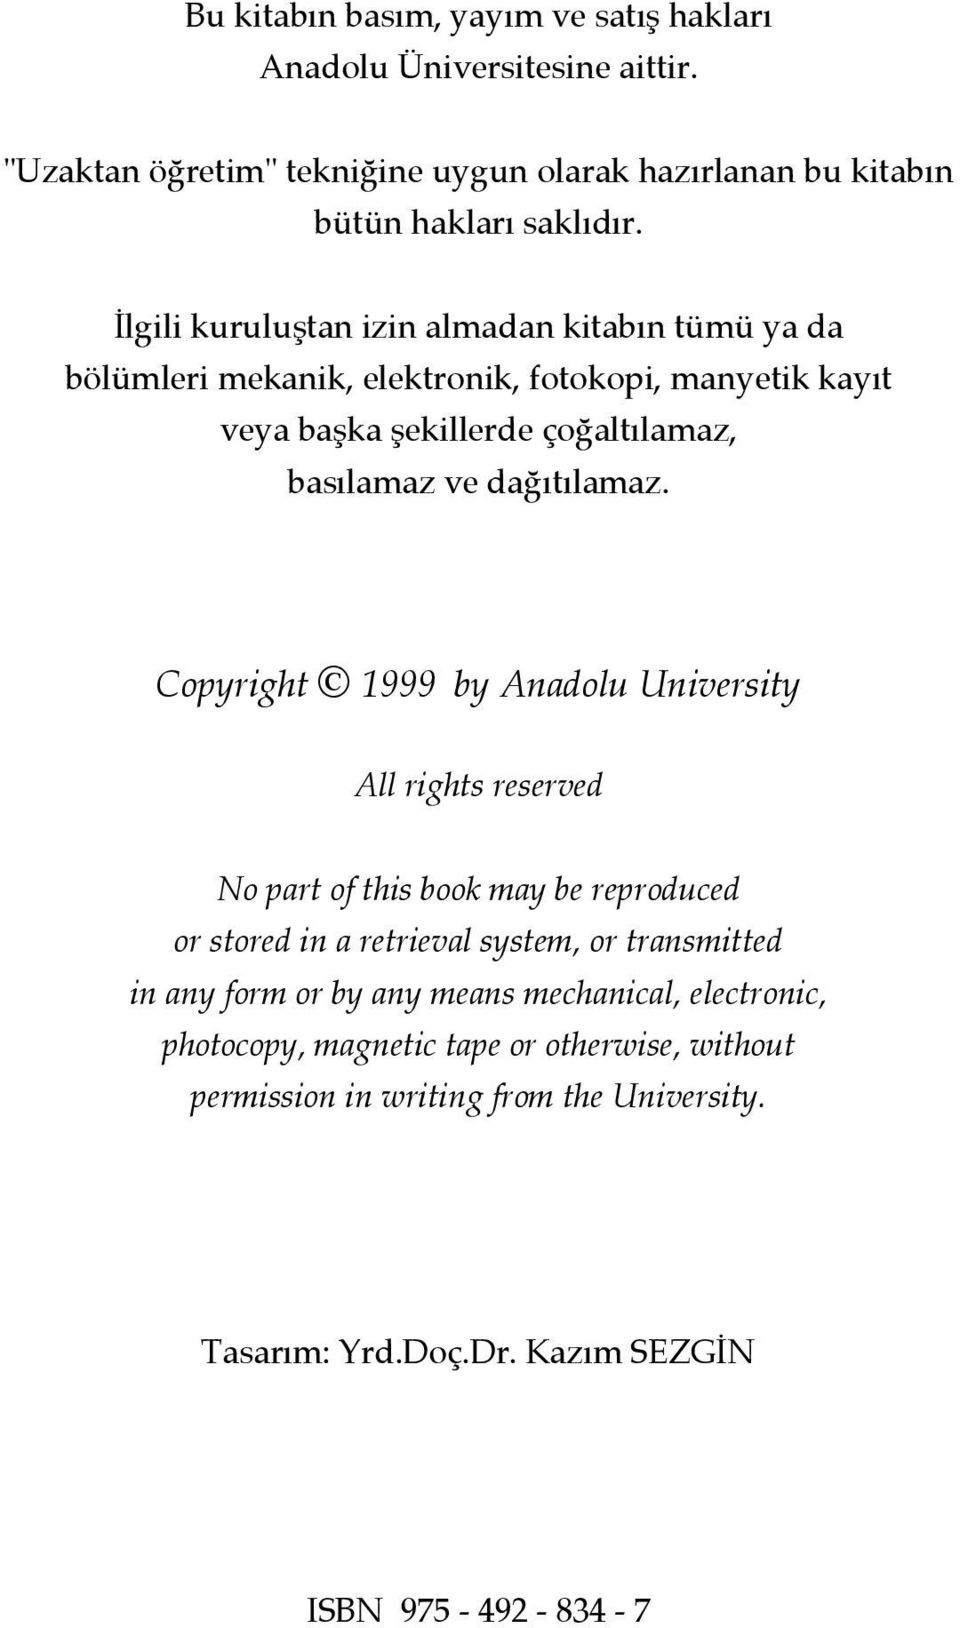 Copyright 1999 by Anadolu University All rights reserved No part of this book may be reproduced or stored in a retrieval system, or transmitted in any form or by any